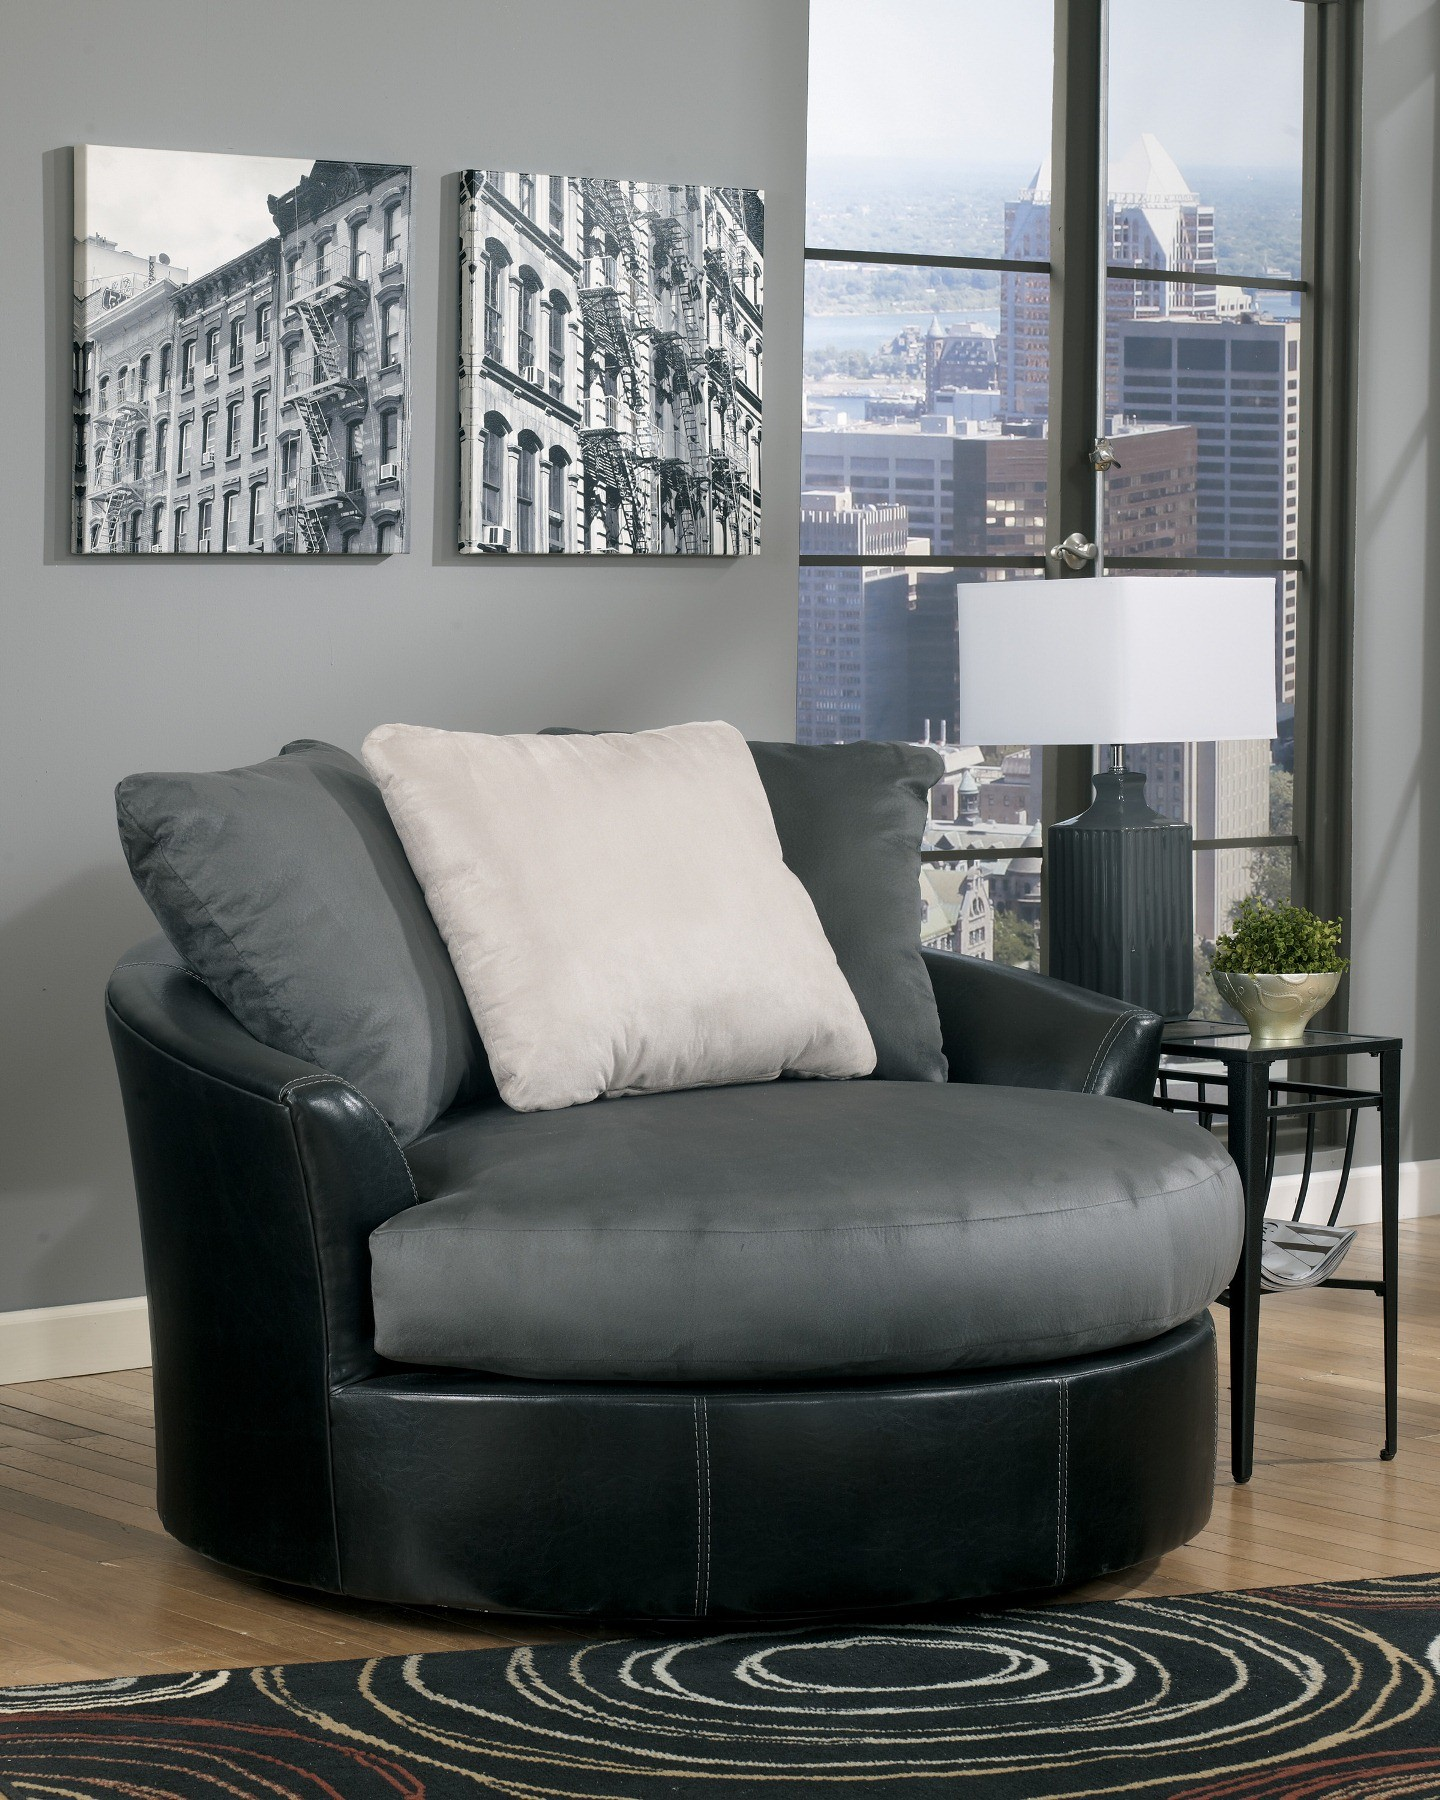 Masoli cobblestone oversized swivel accent chair from for Oversized chair cheap